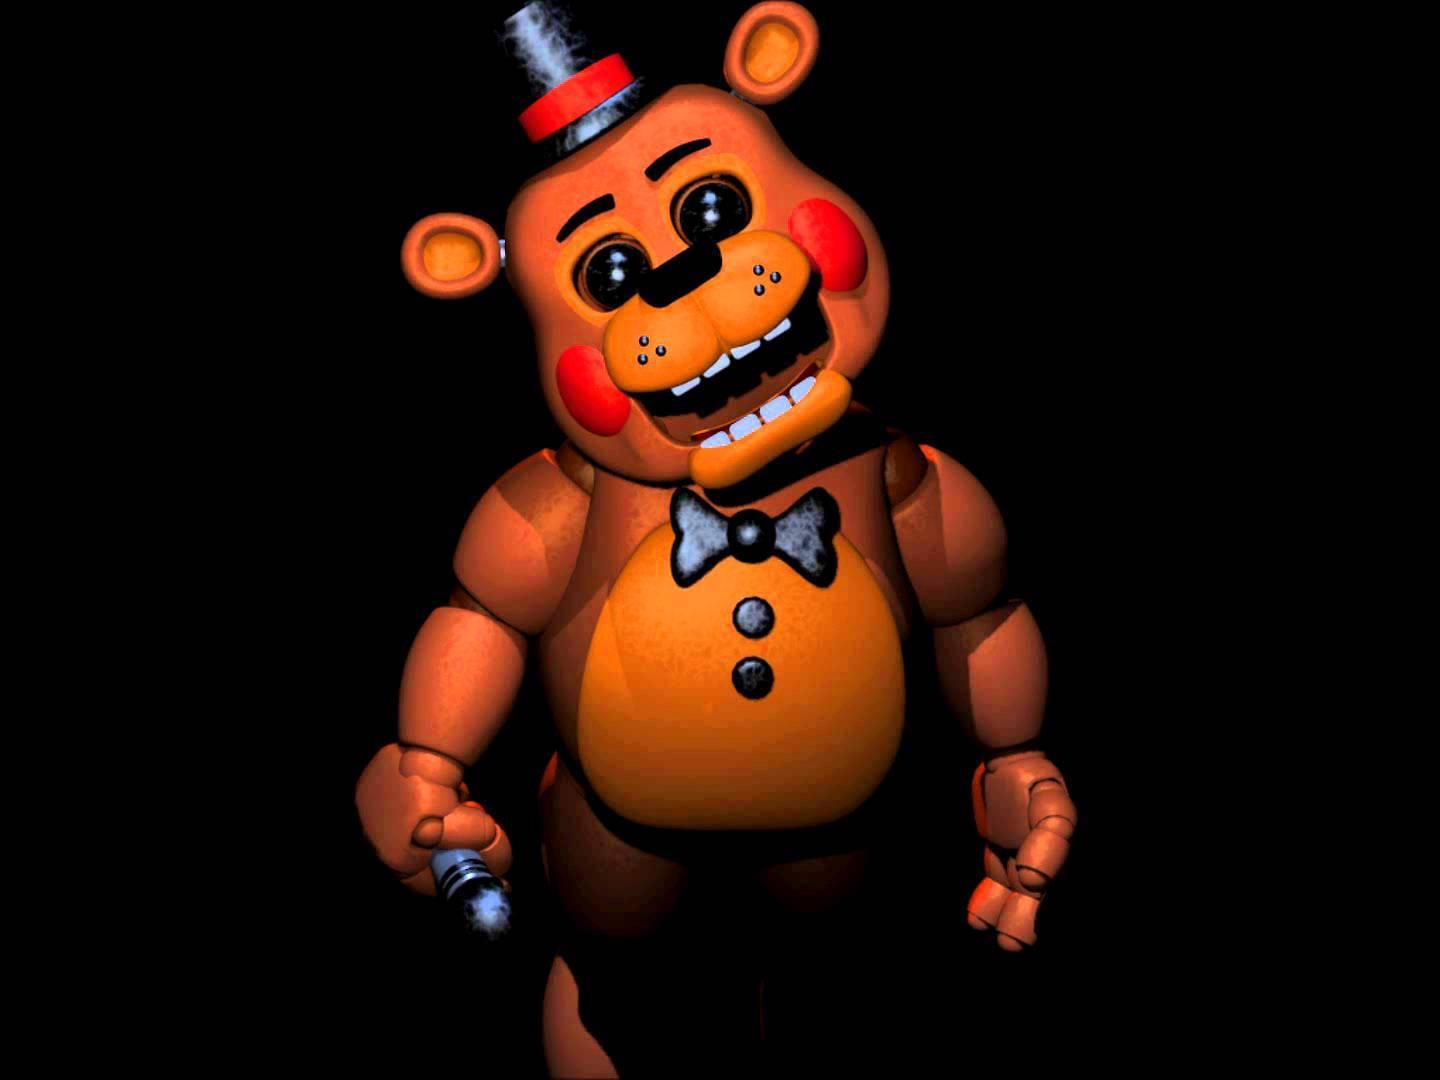 Do you like Toy Freddy from FNAF?